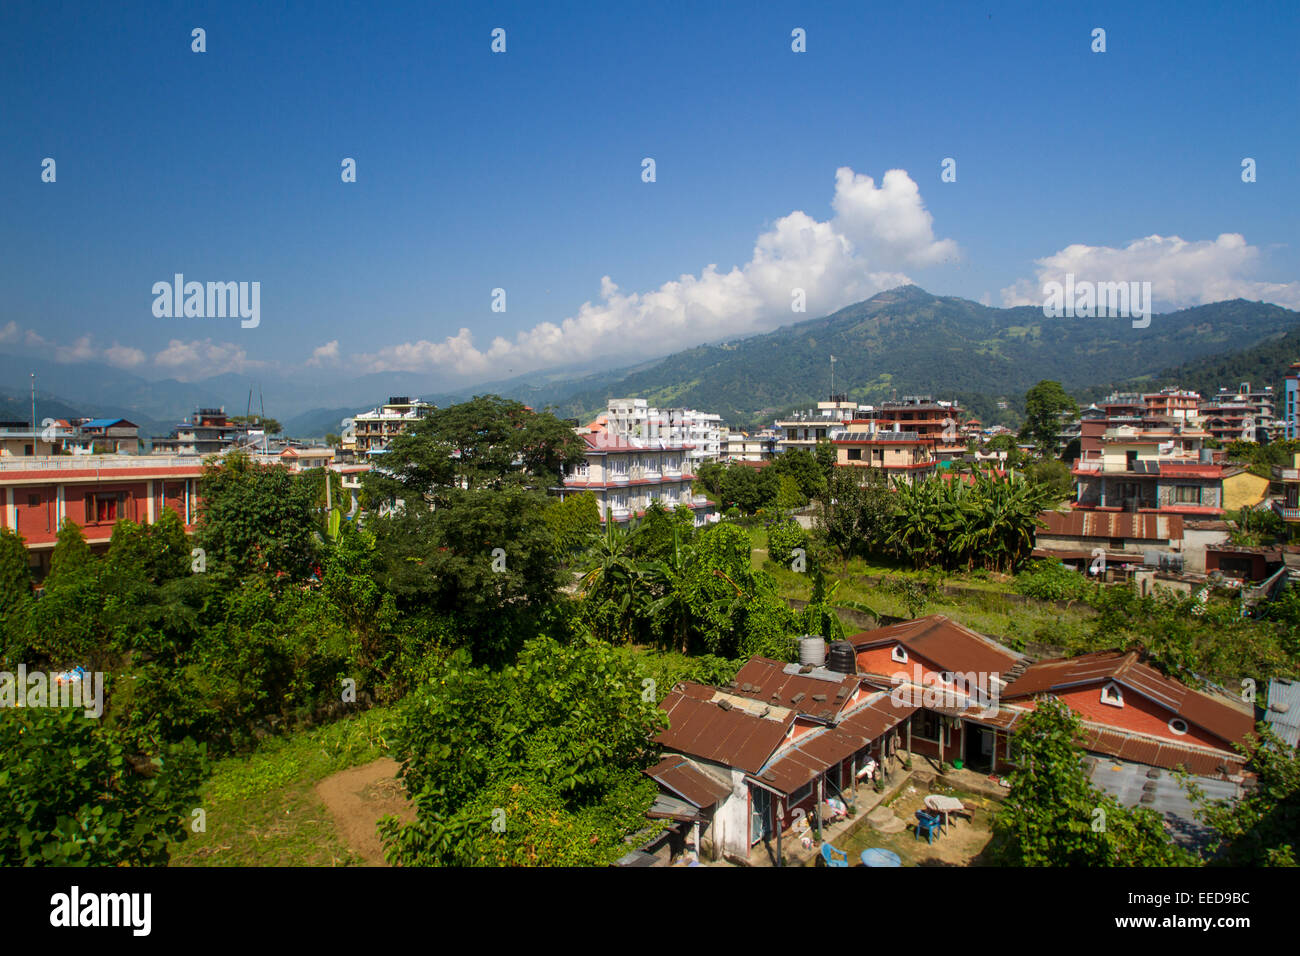 Pokhara, Nepal, as seen from a hotel balcony. - Stock Image